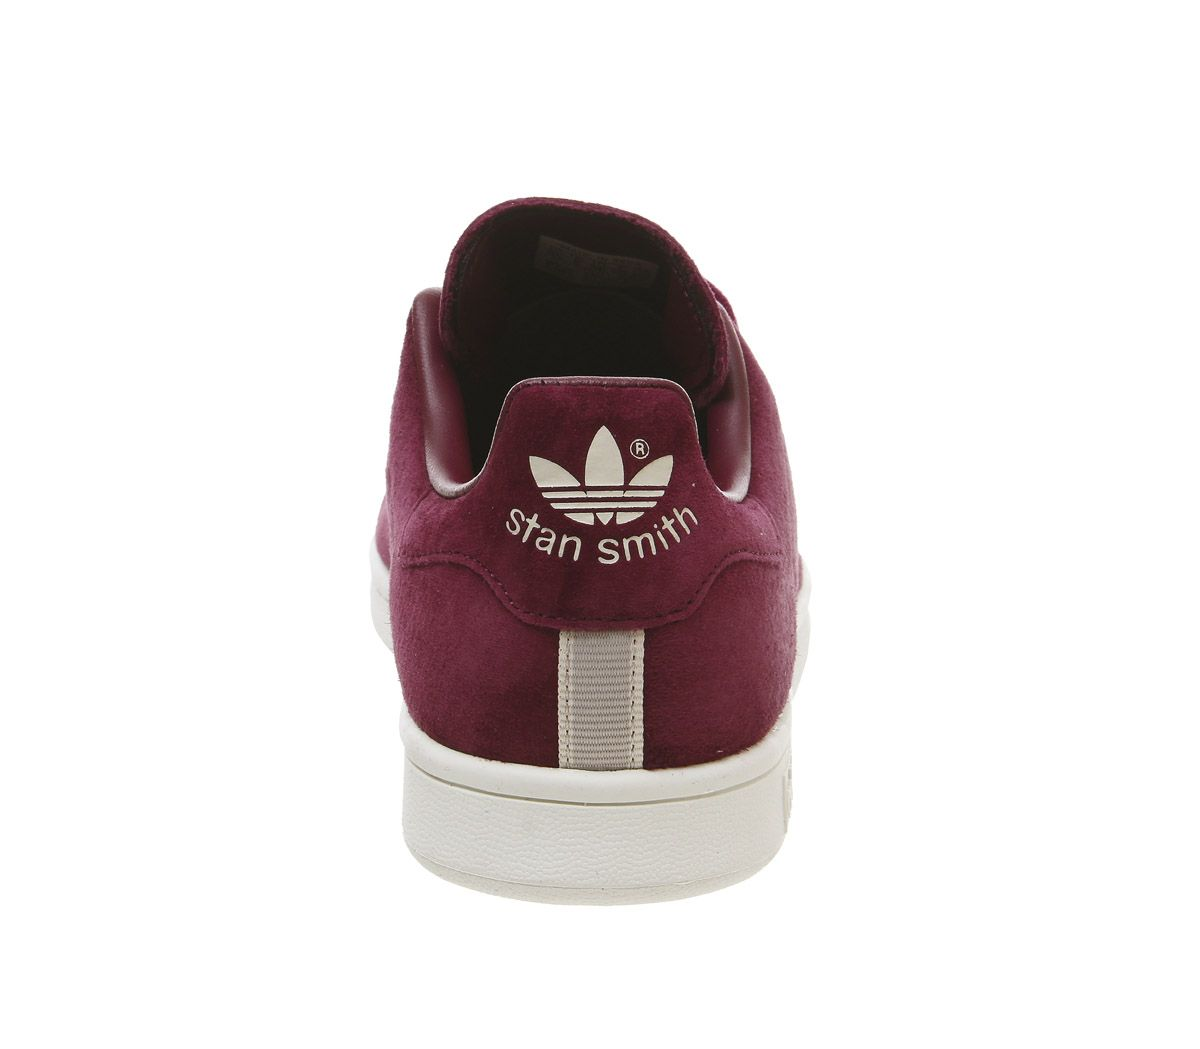 Details about Mens Adidas Stan Smith Trainers Maroon Crystal White Clear Brown Trainers Shoes